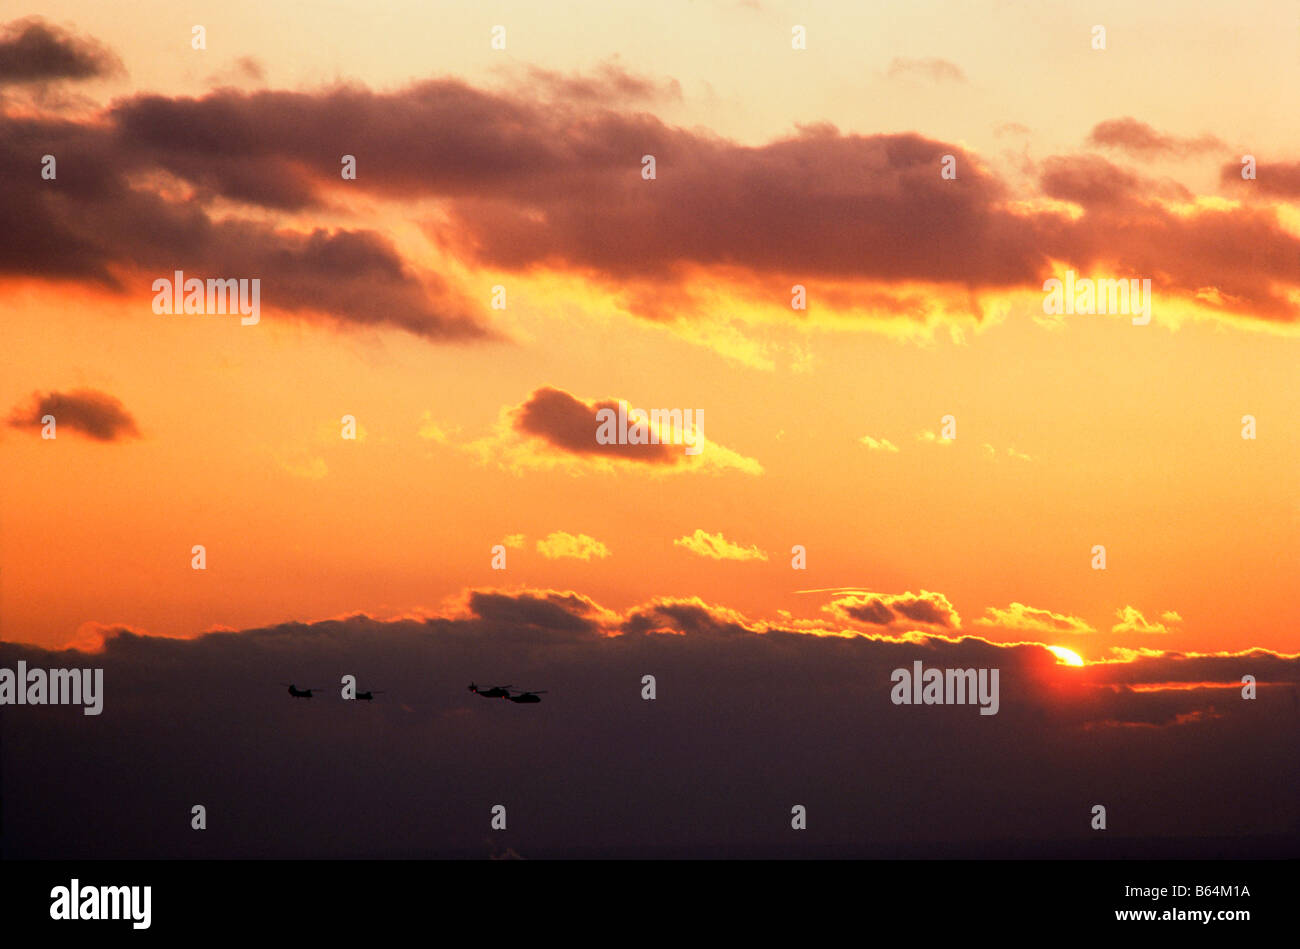 Severl military helicopters in flight at sunset - Stock Image